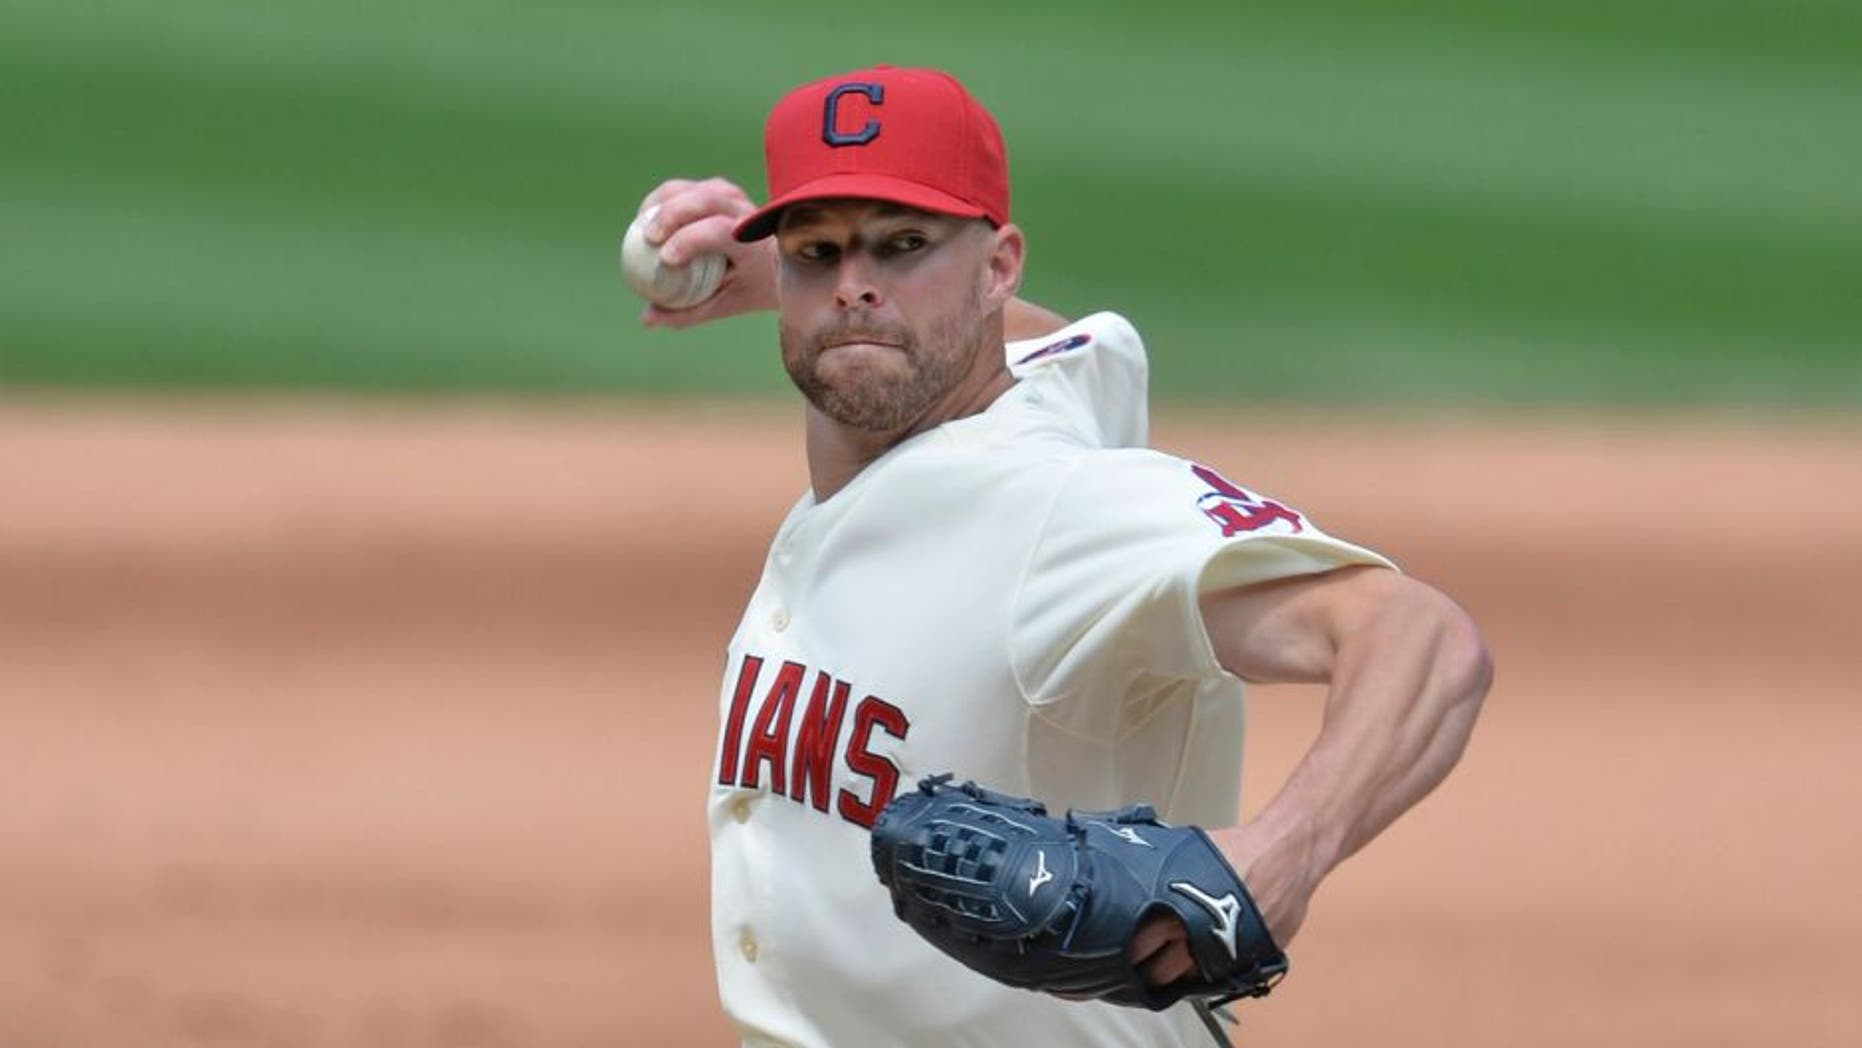 Cleveland Indians starting pitcher Corey Kluber delivers in the sixth inning against the Minnesota Twins at Progressive Field on Sunday, August 9, 2015.